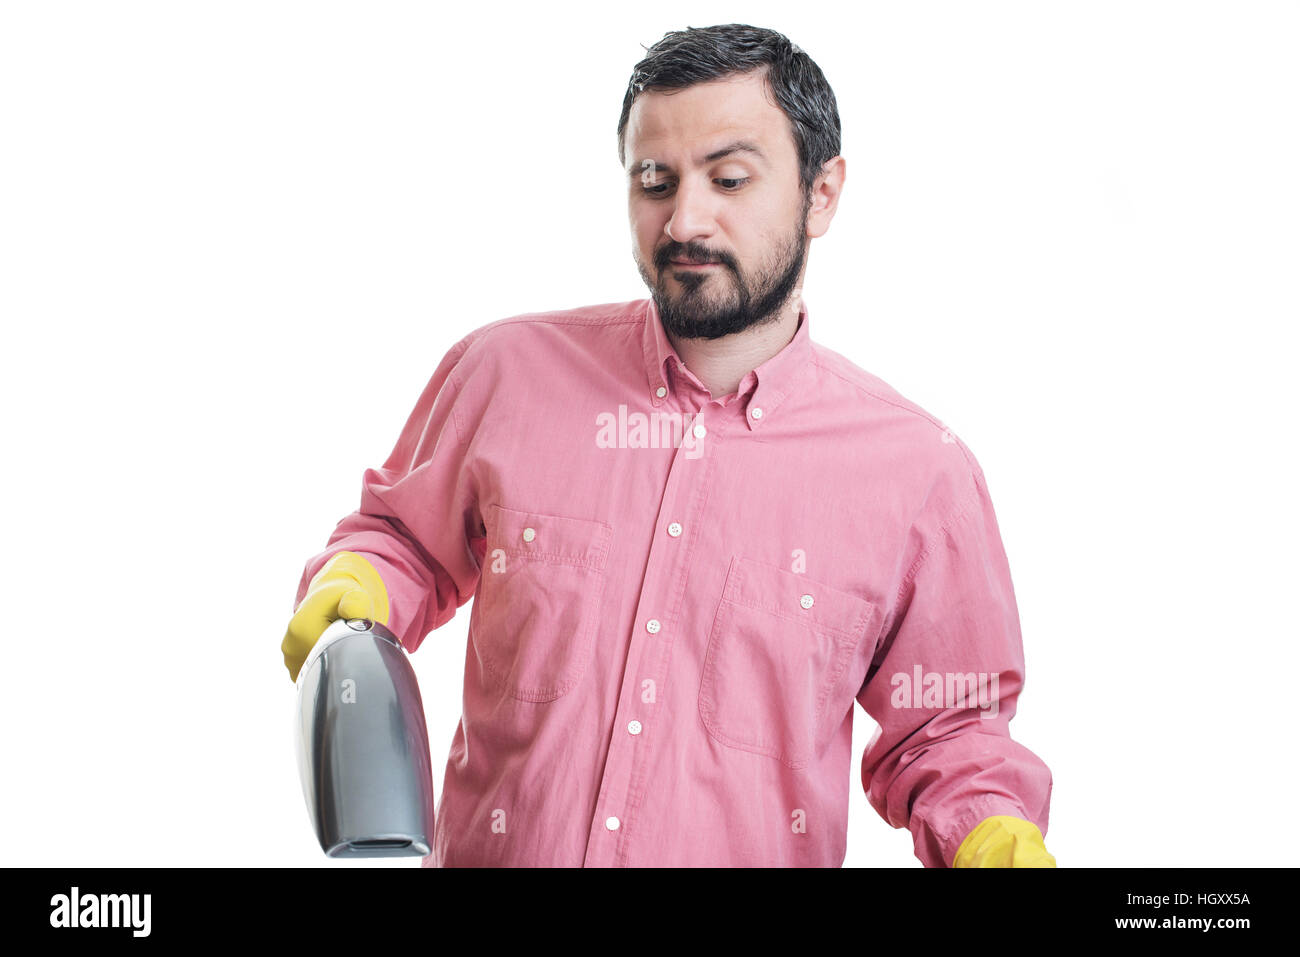 Smiling young man with handheld vacuum cleaner Stock Photo